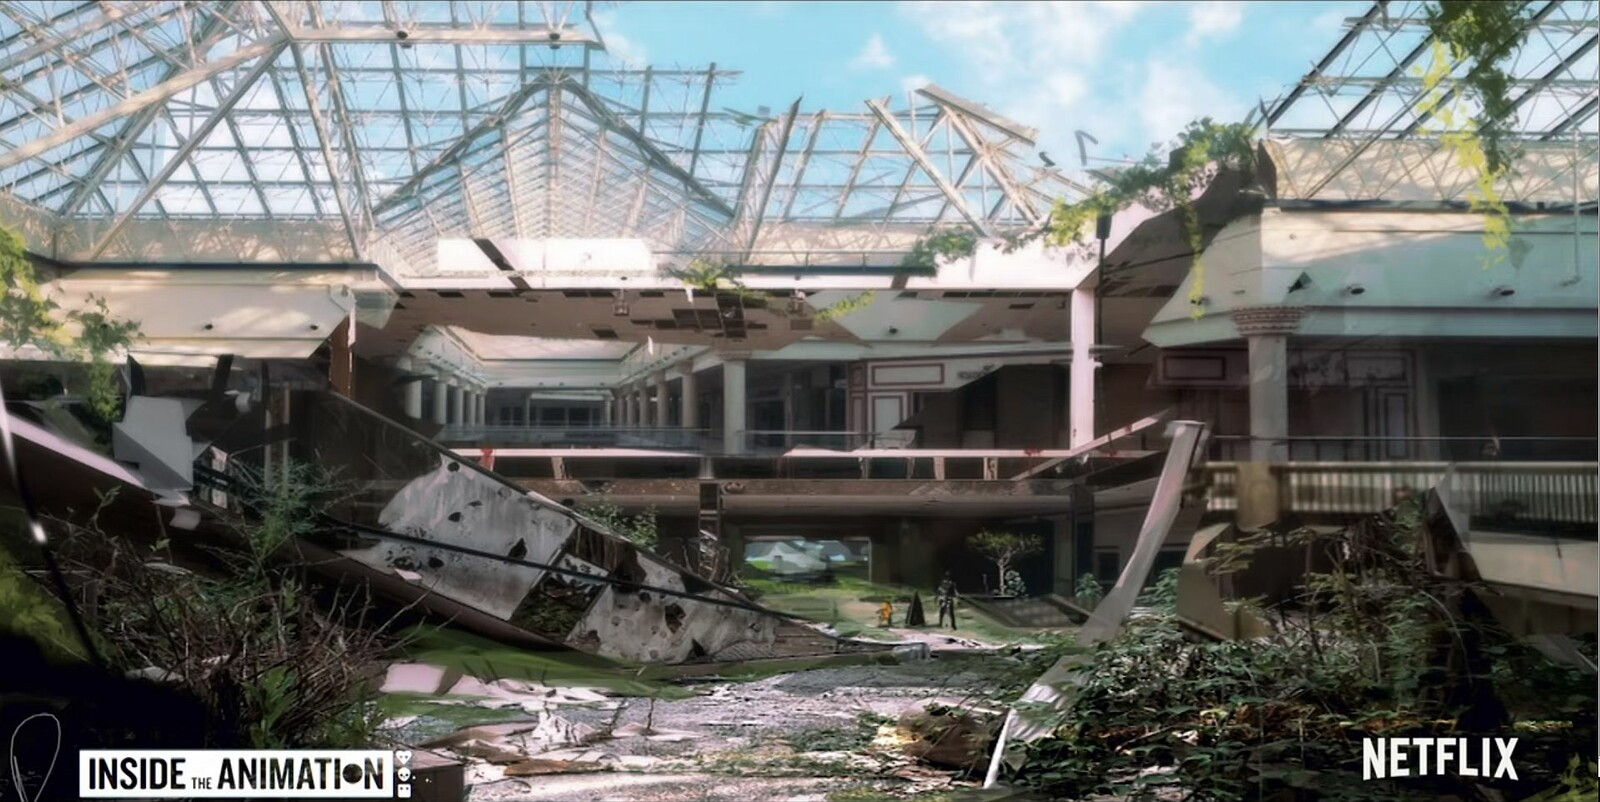 Concept for Mall published in Inside the Animation bts series